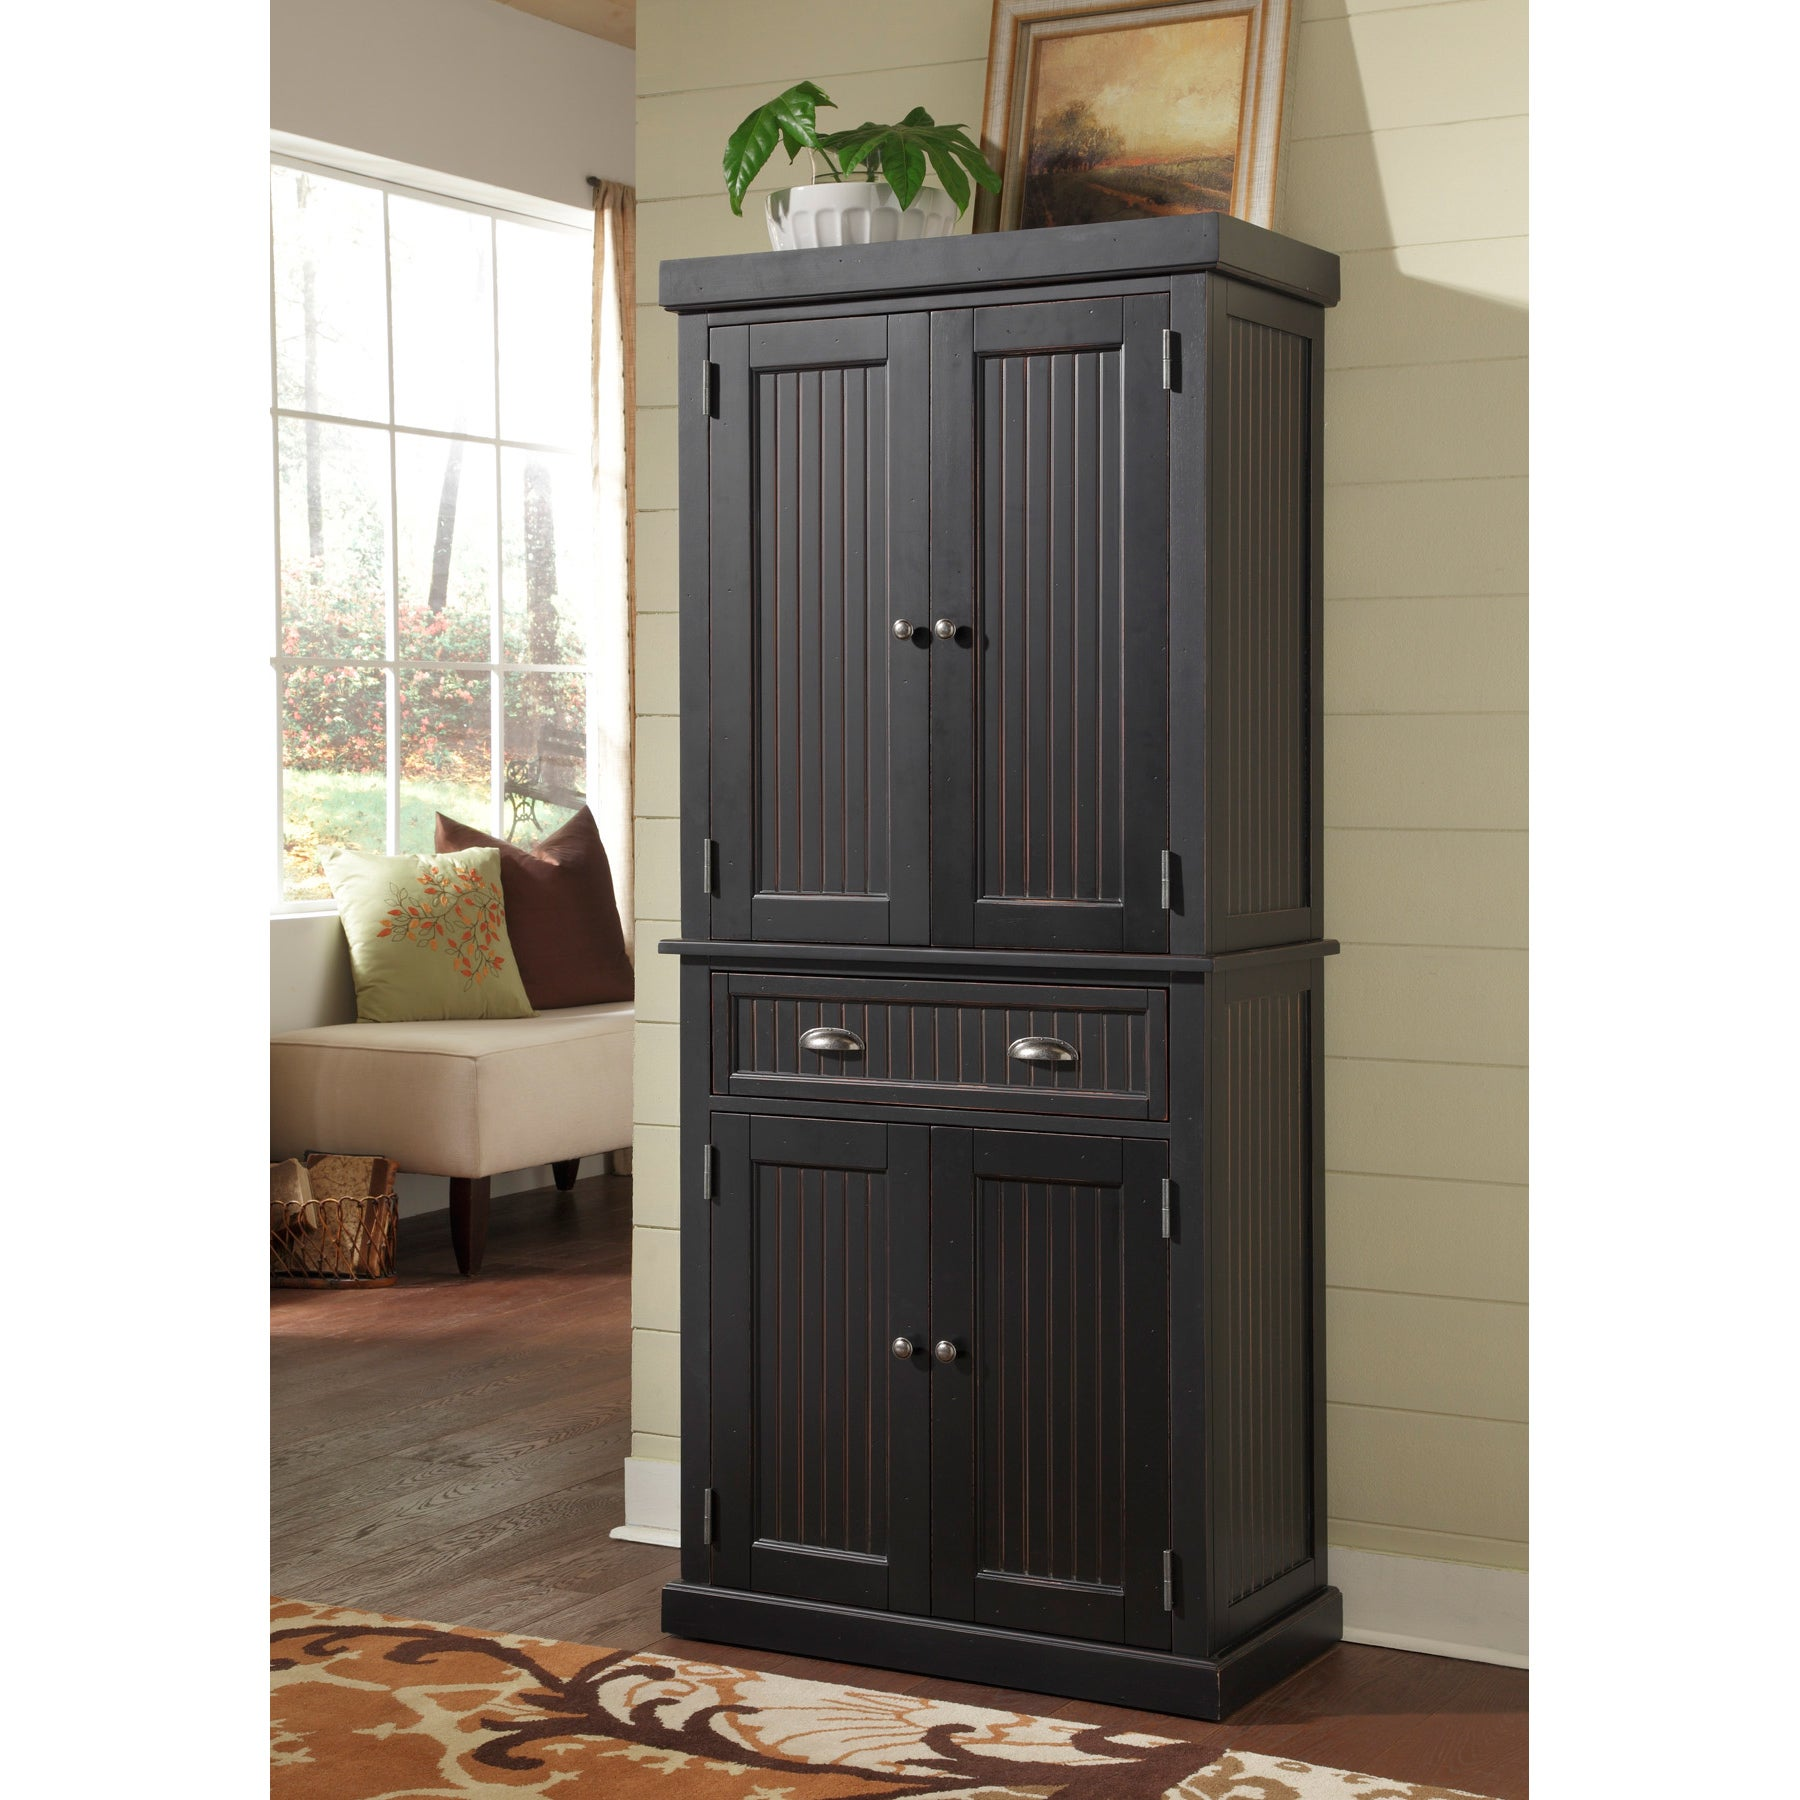 Shop nantucket black distressed finish pantry by home styles free shipping today overstock com 20882265